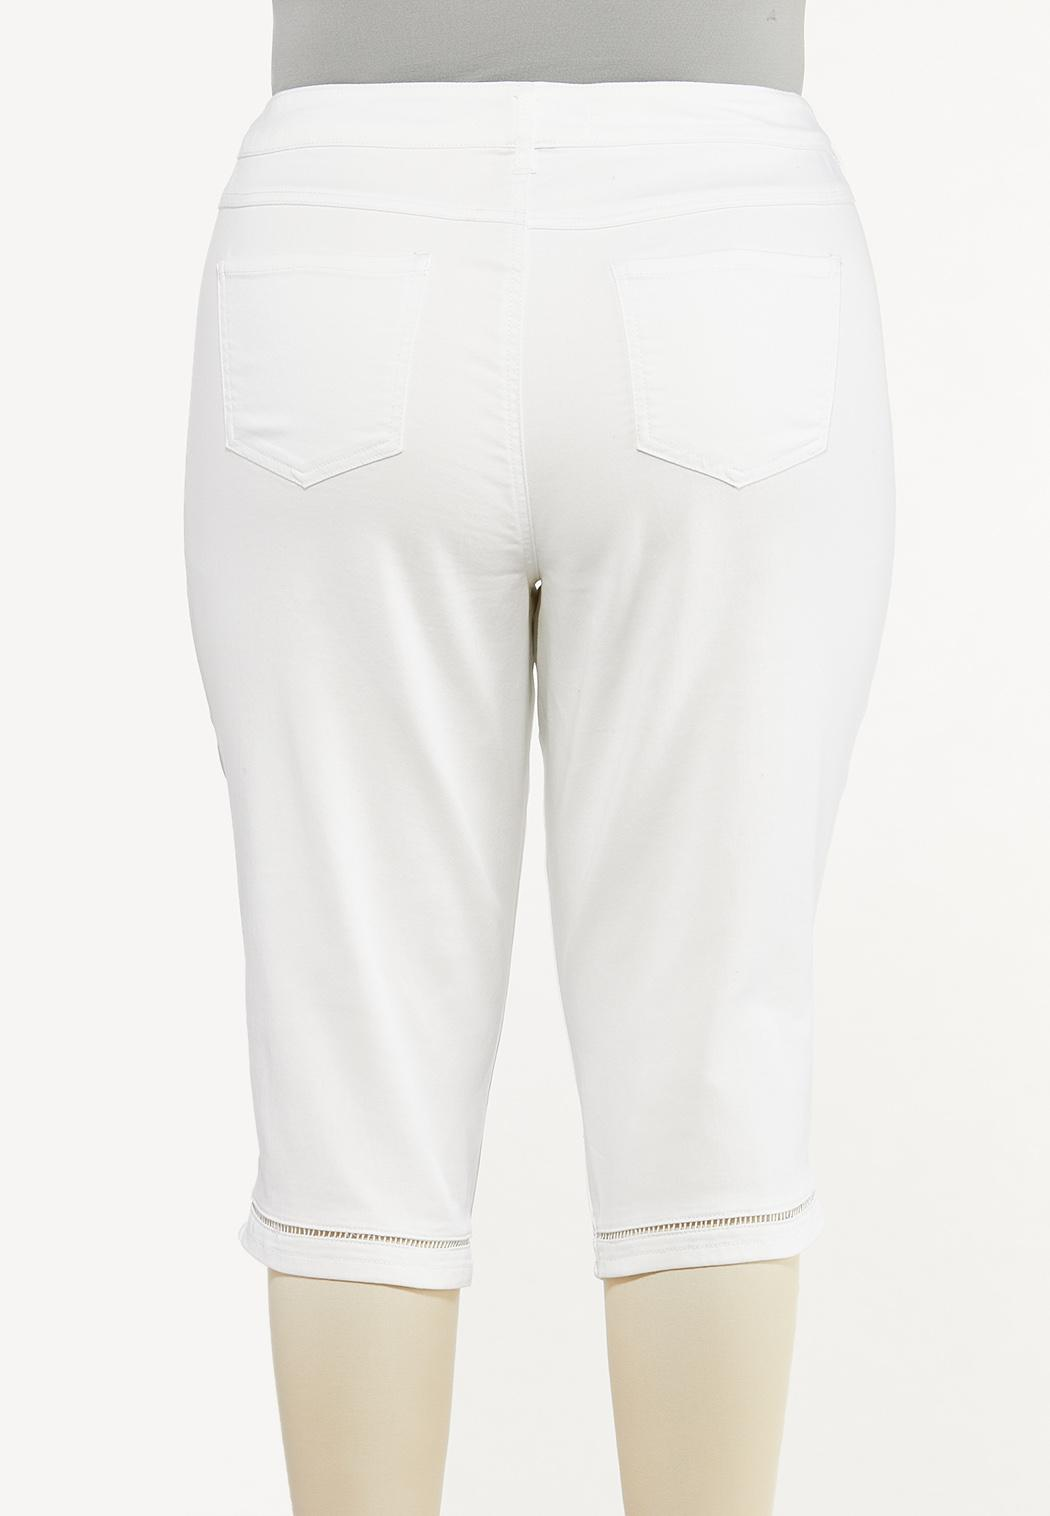 Plus Size Cropped Lattice Jeans (Item #44514108)